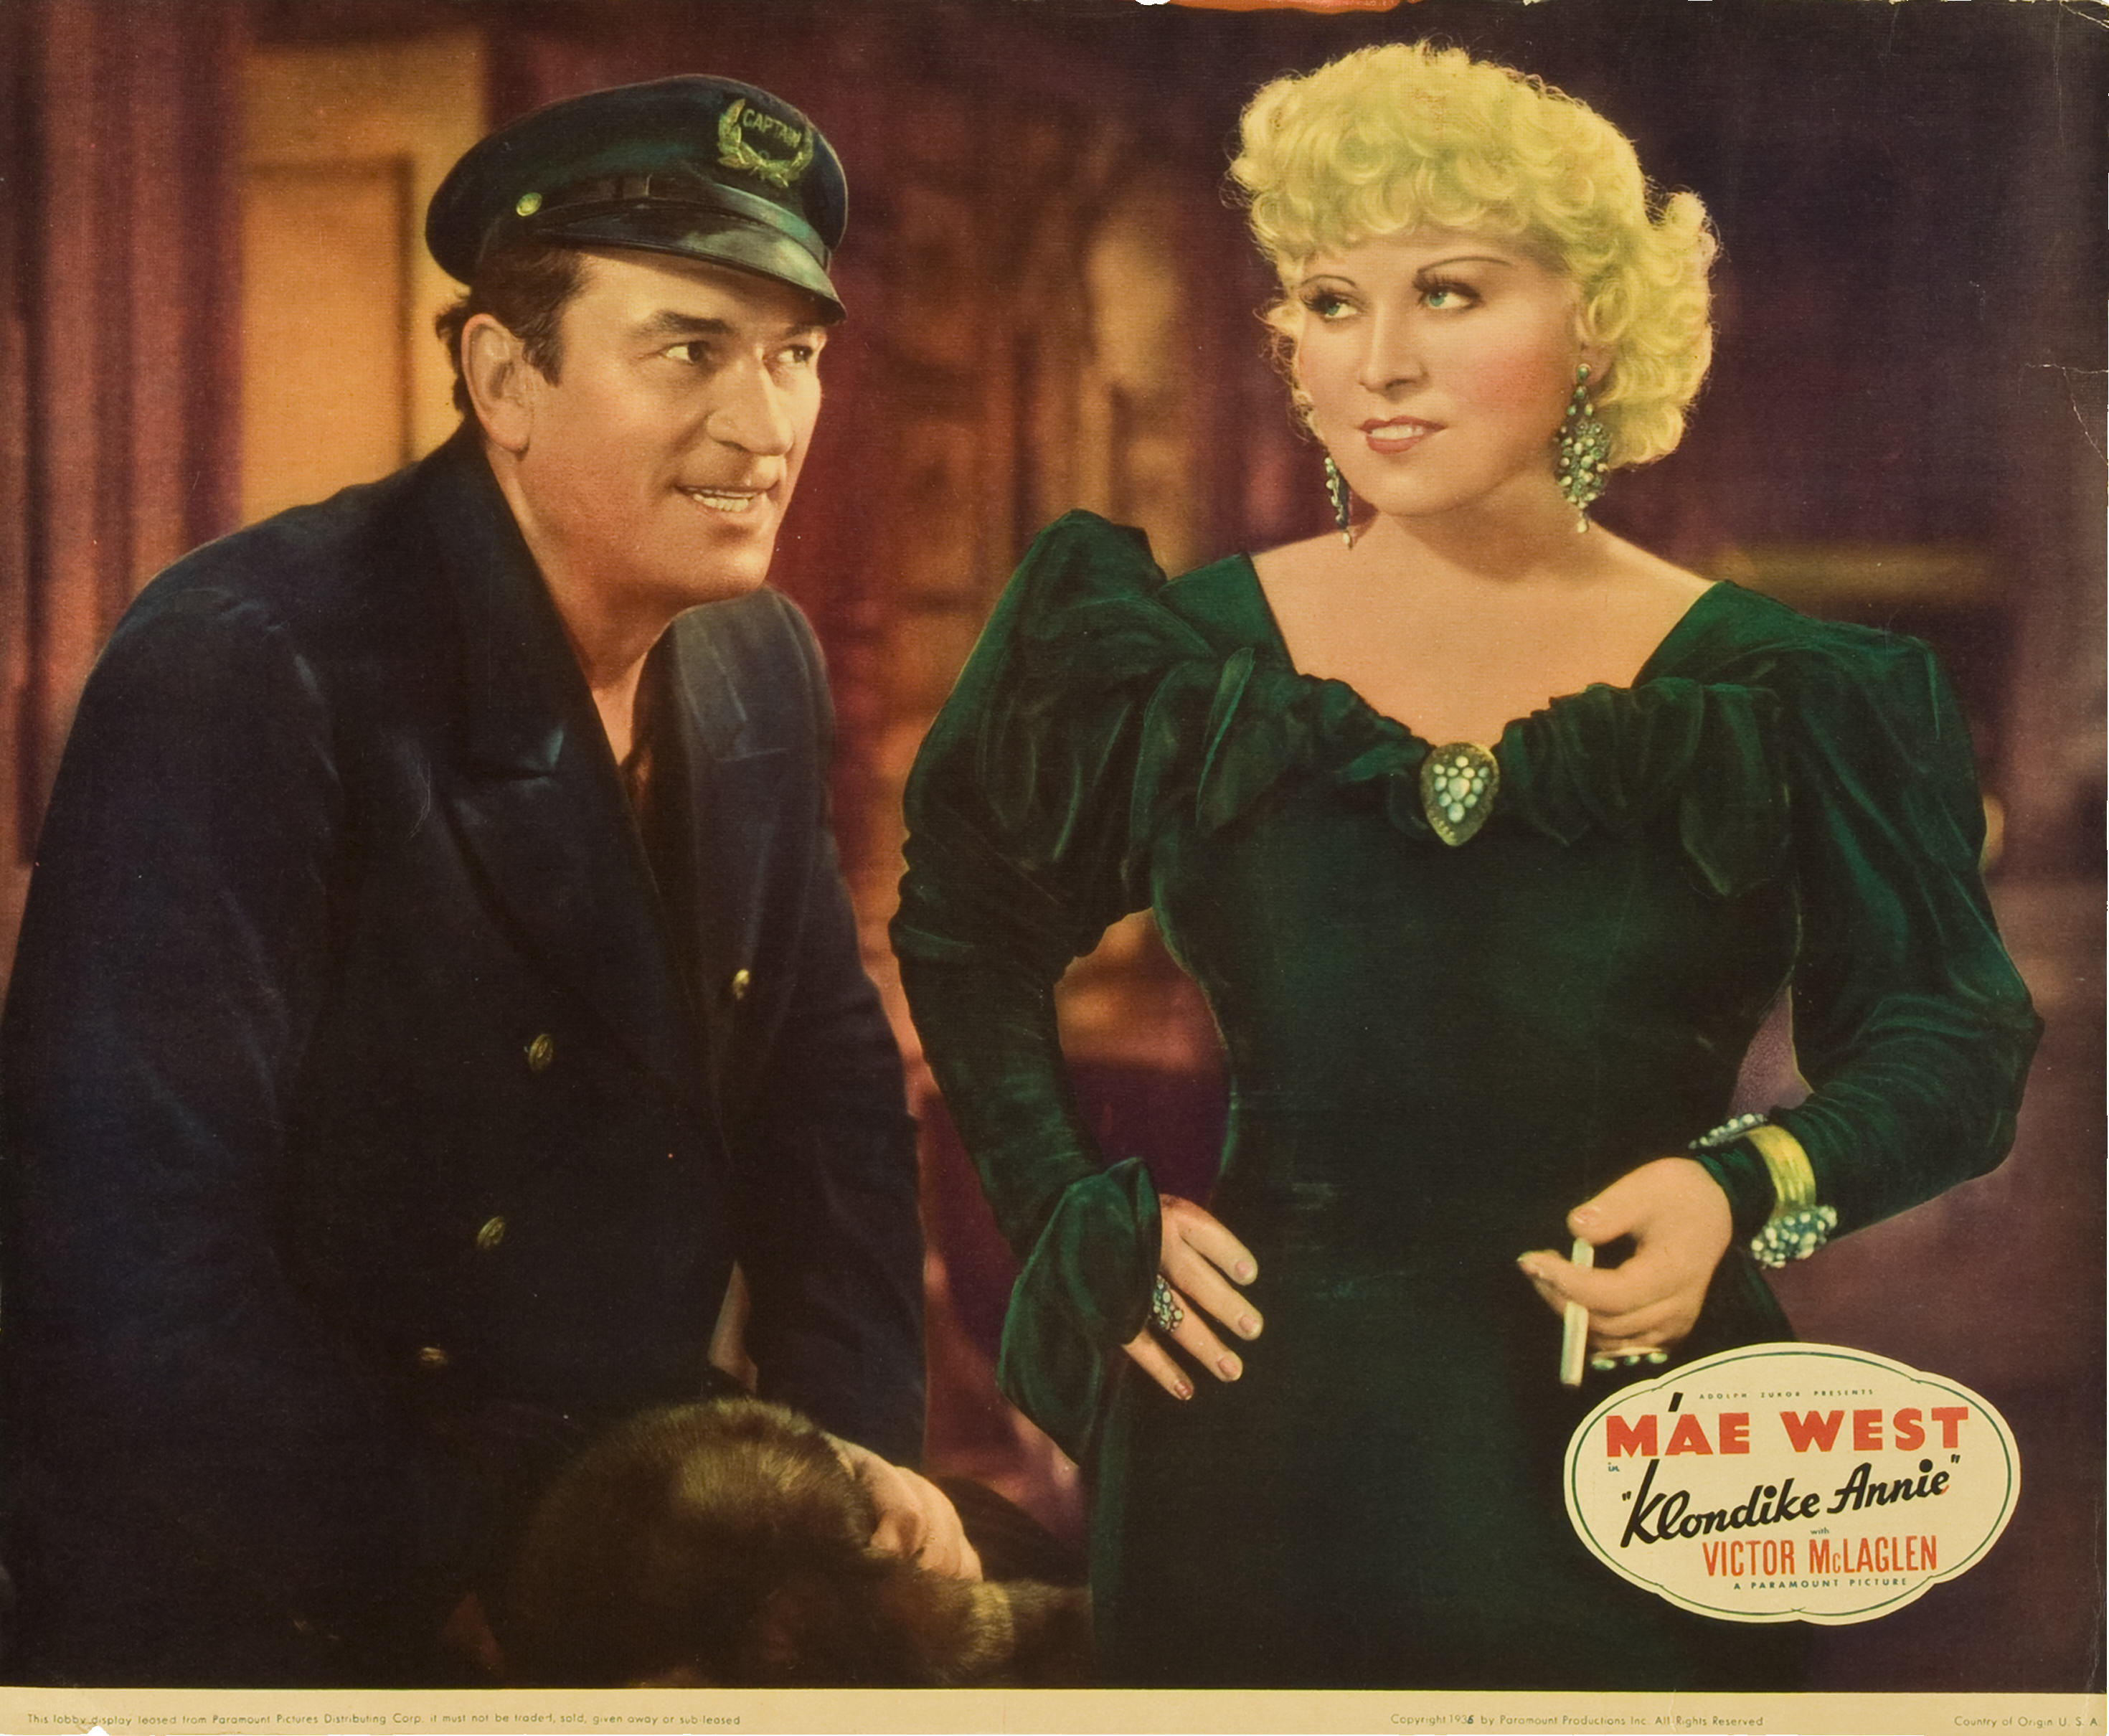 Victor McLaglen and Mae West in Klondike Annie (1936)